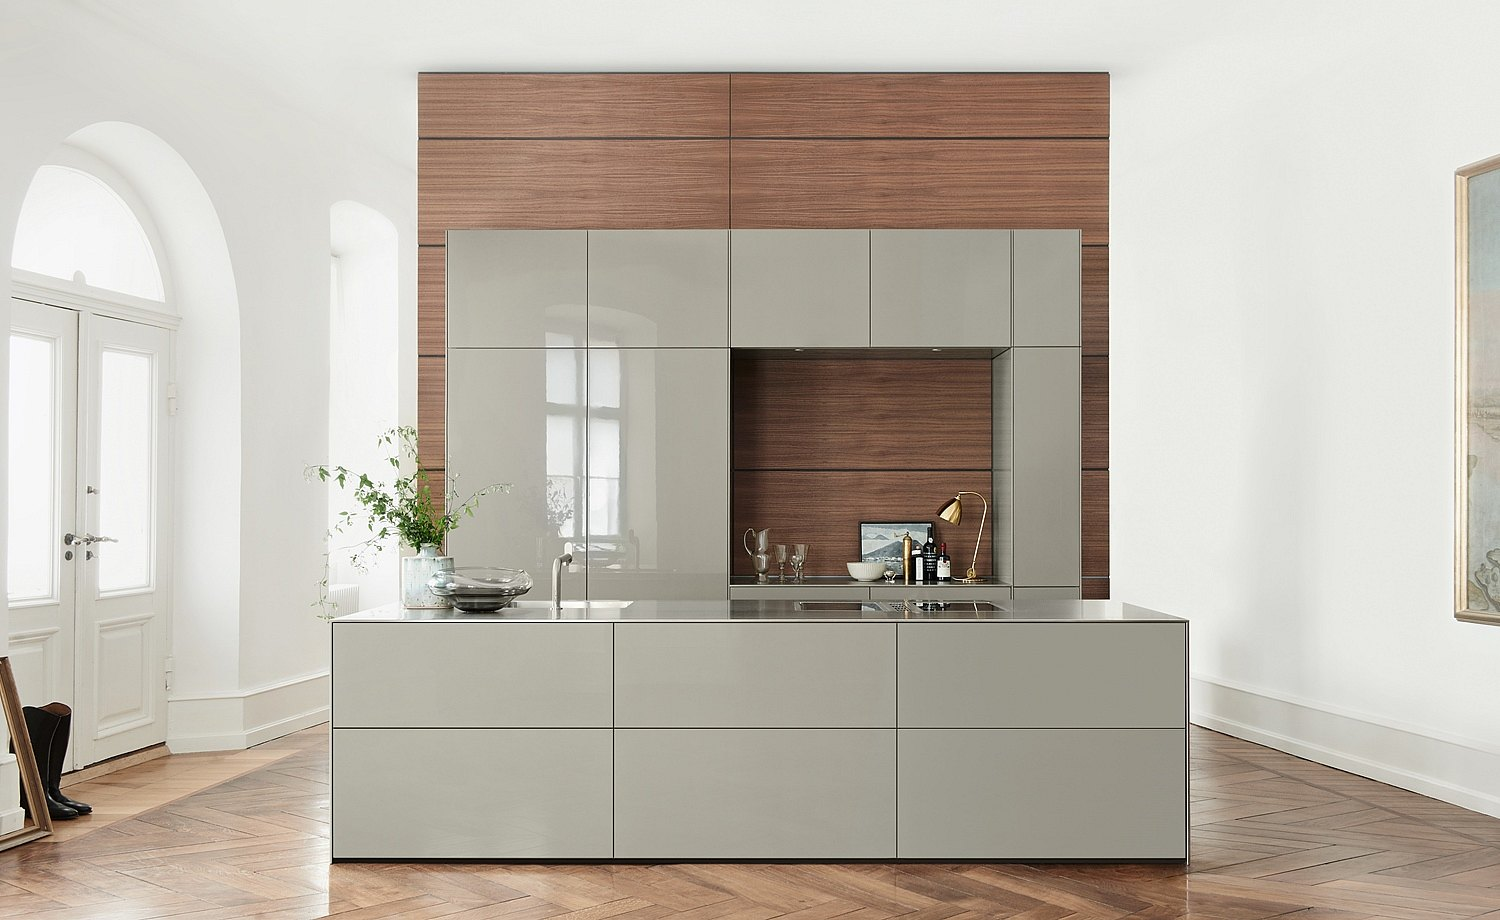 b3 with cabinets and island with gray lacquer front panels in front of the functional wall made from dark veneer